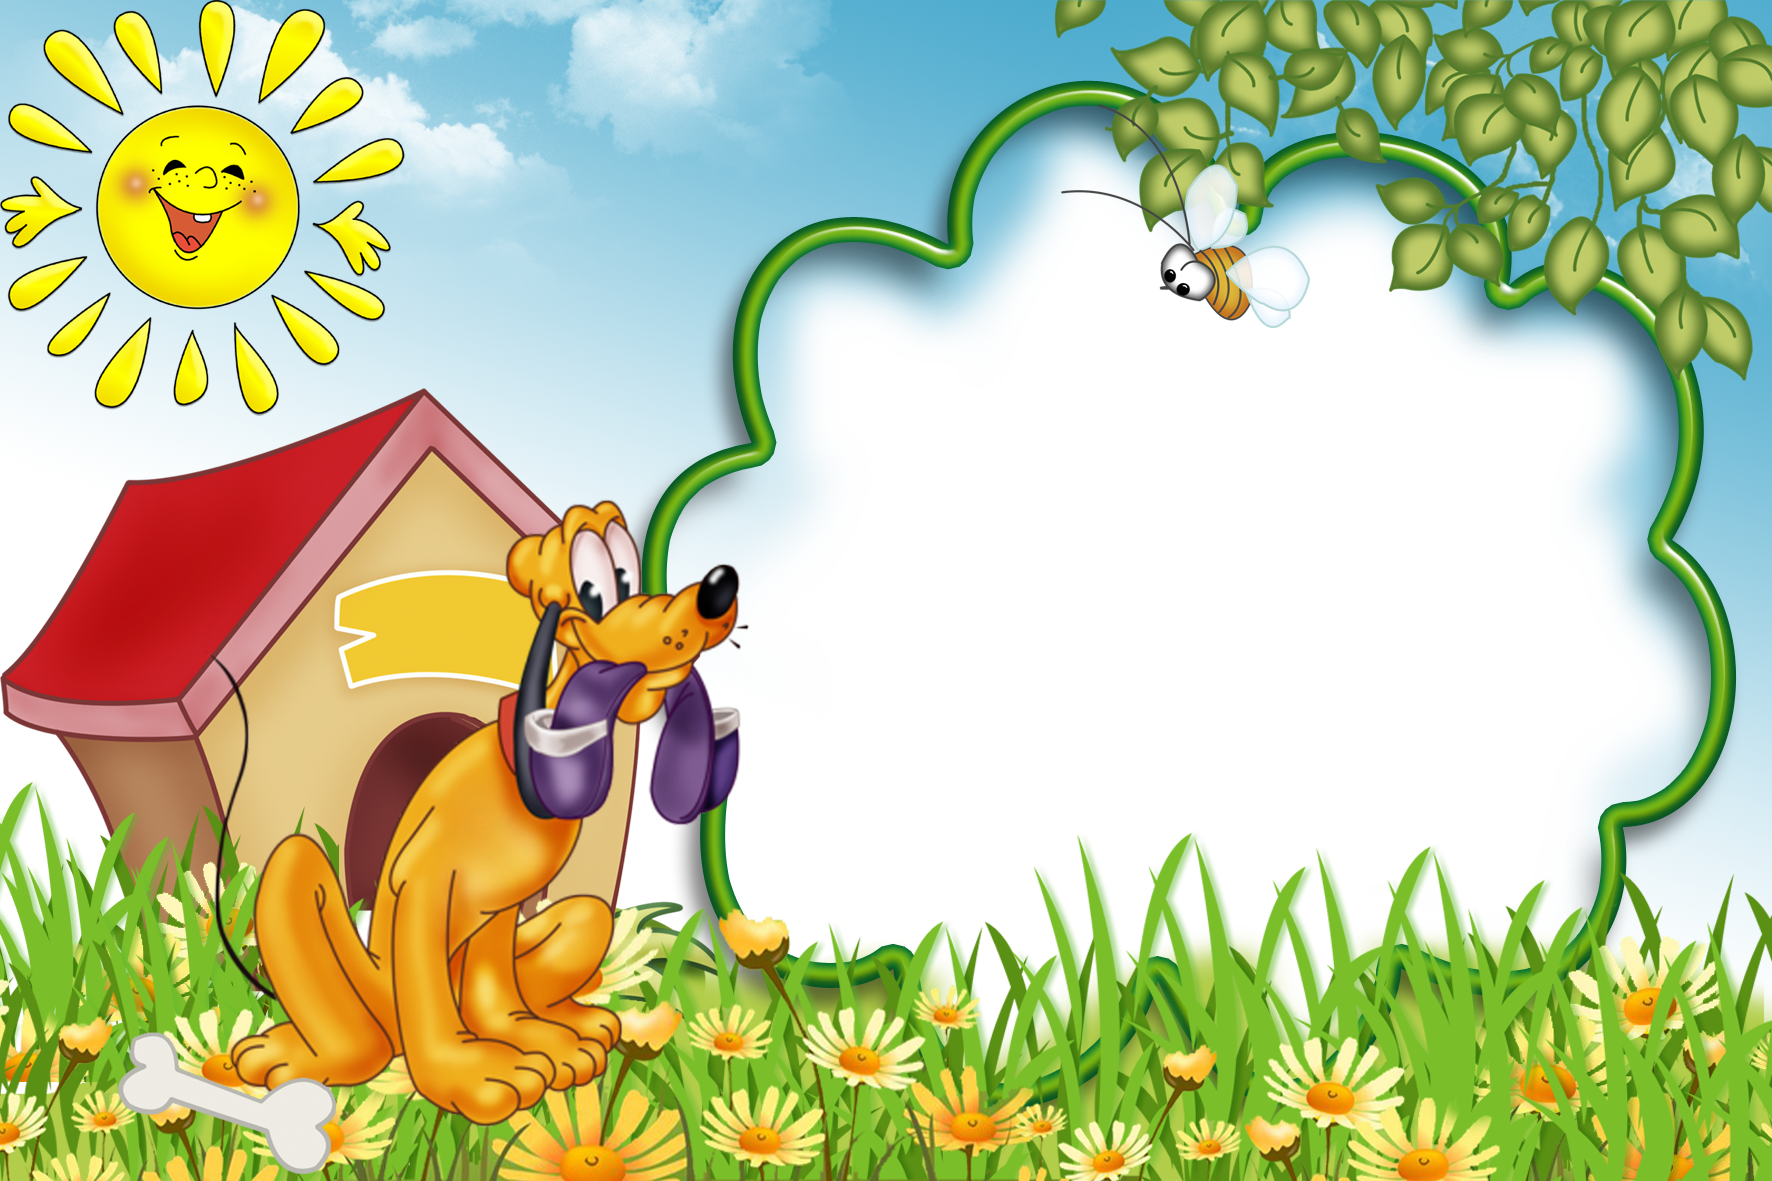 Frame clipart forest. Kids transparent photo with